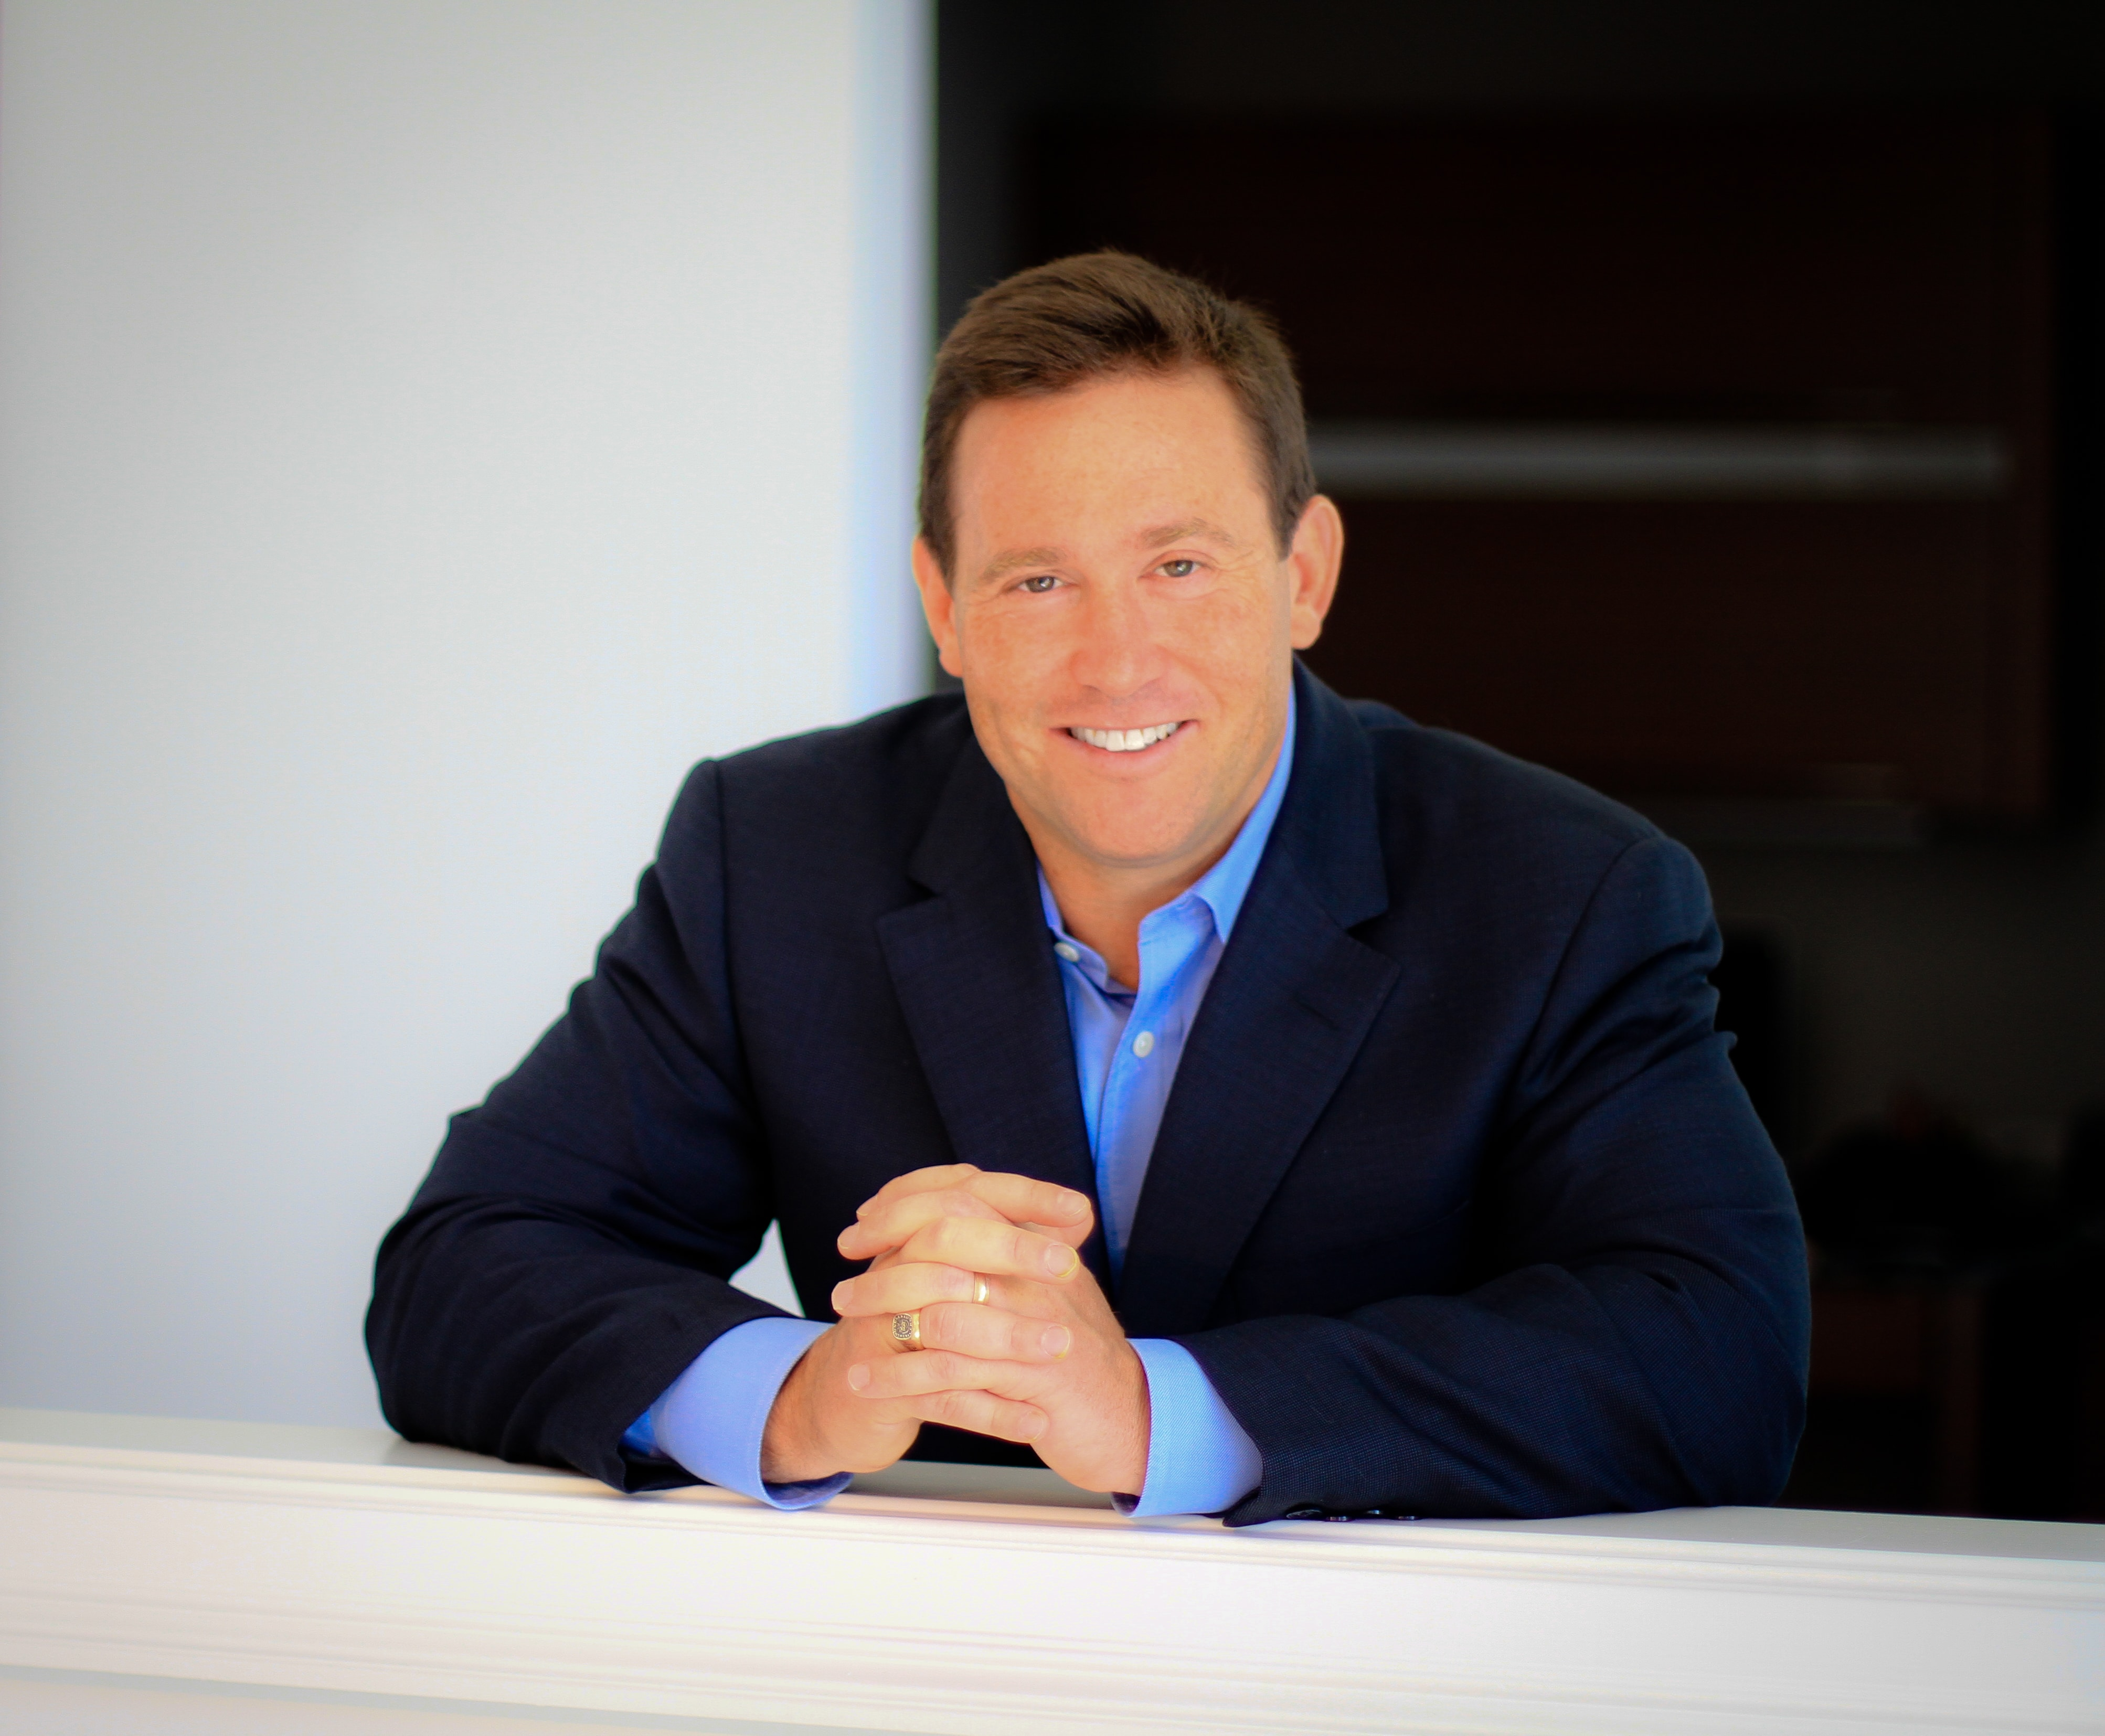 CNLP 239: Jon Gordon on Dealing with The Negative Voices in Your Head, Negativity in Your Organization and How to Stay Positive